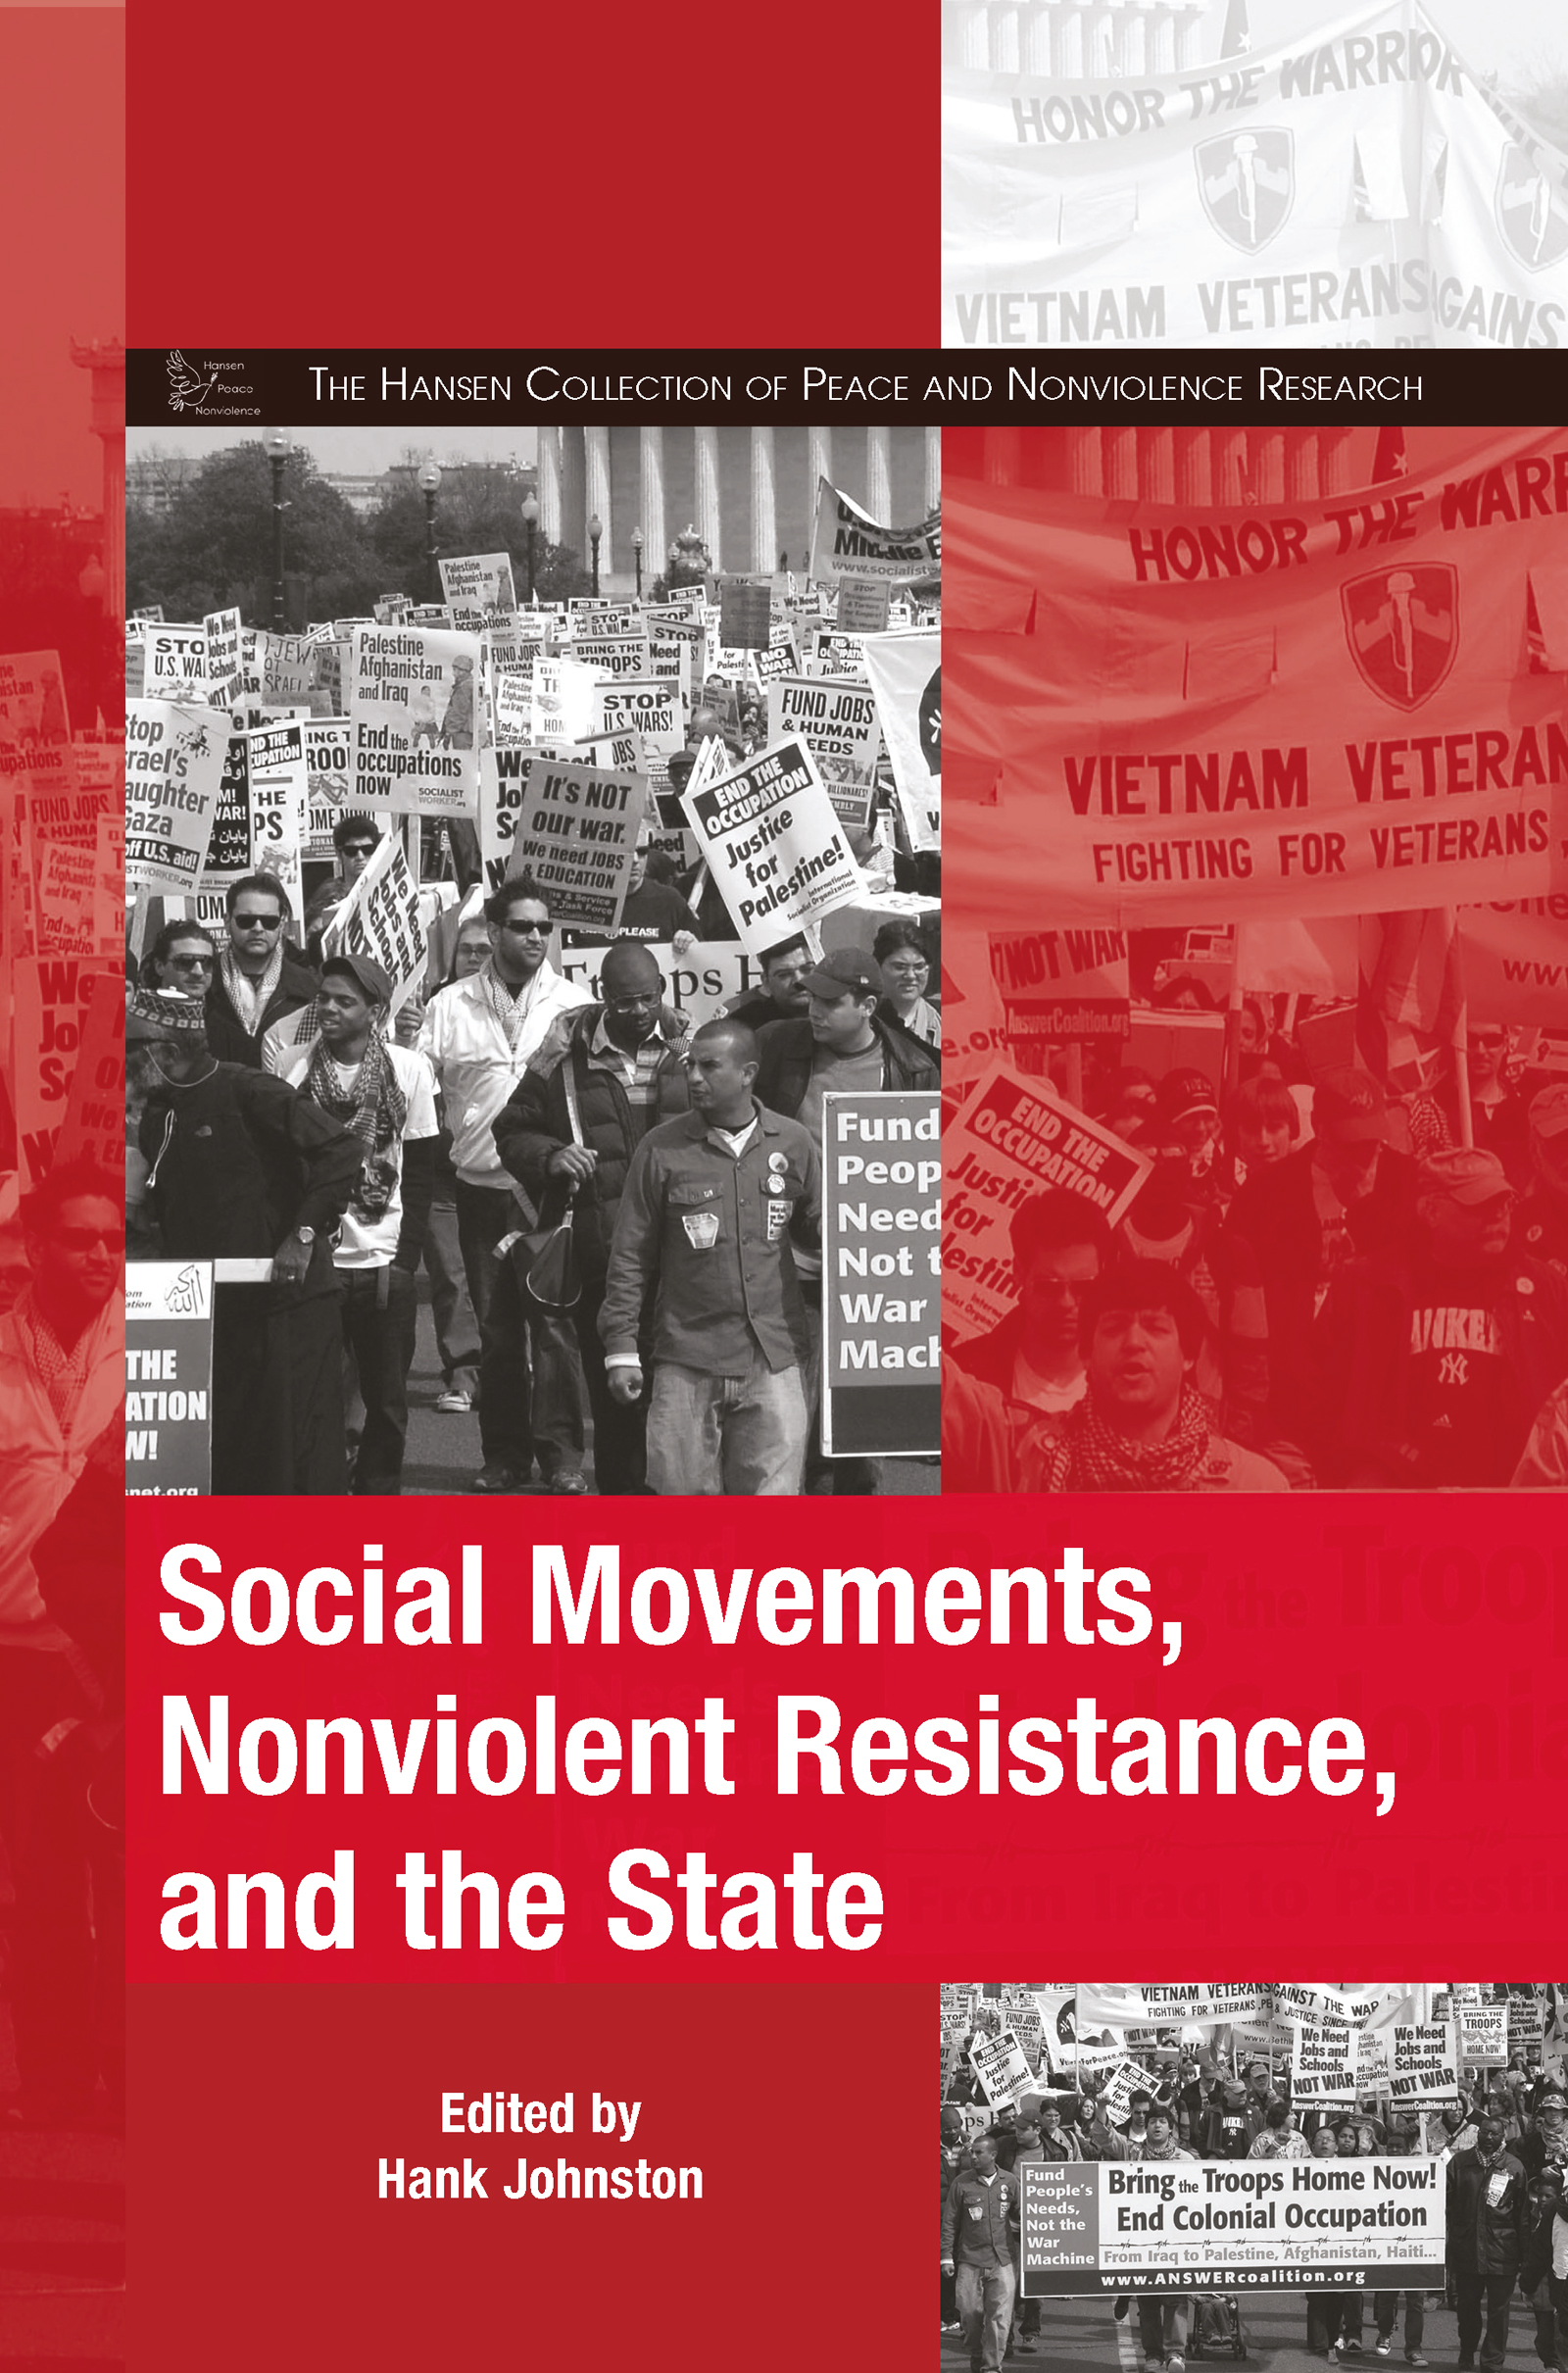 Social Movements, Nonviolent Resistance, and the State